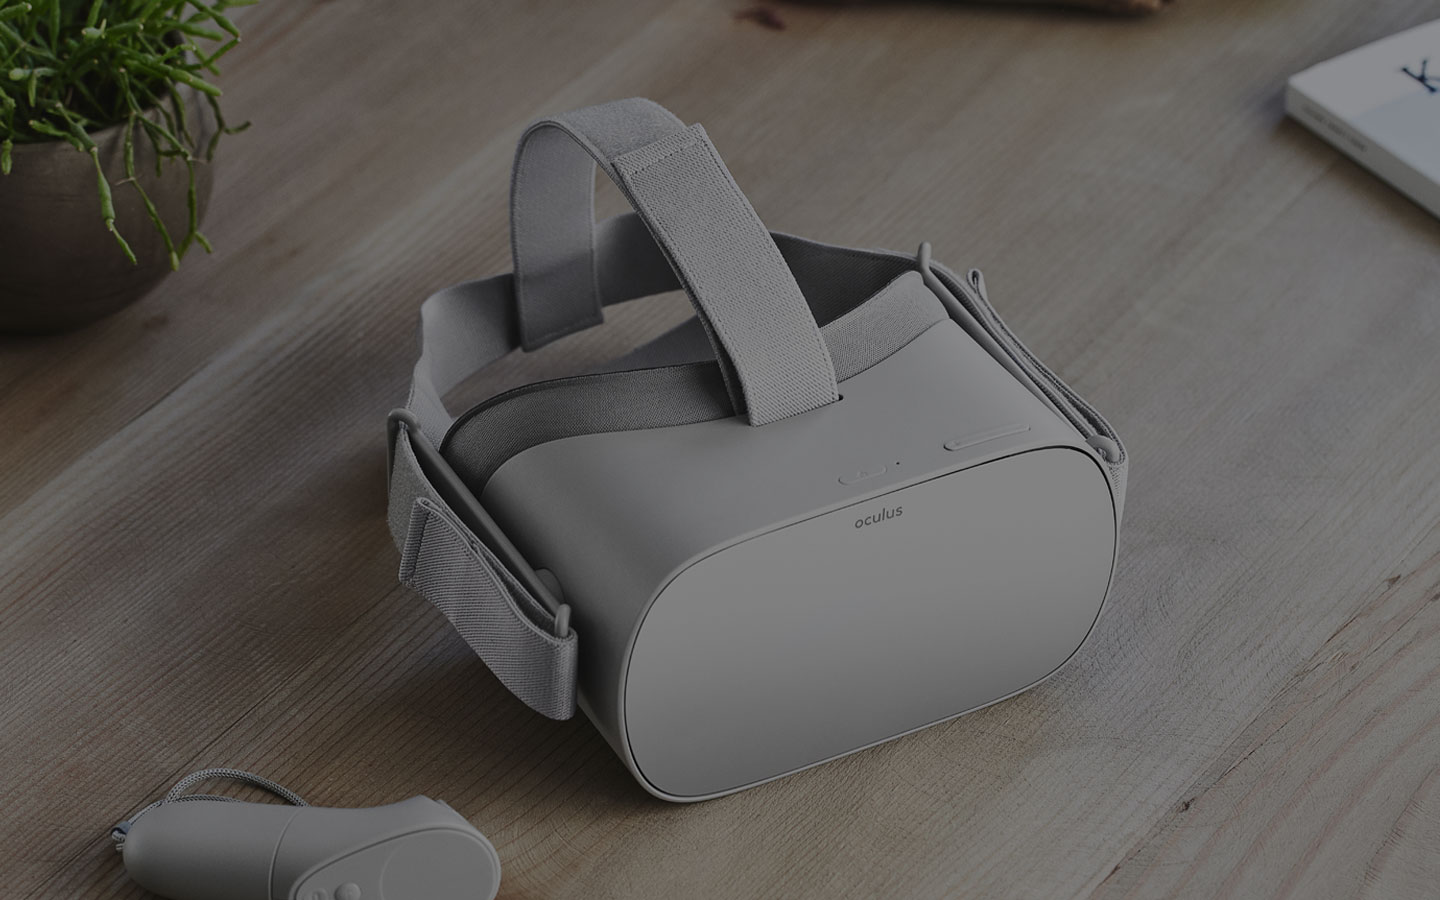 Oculus-Go-Business